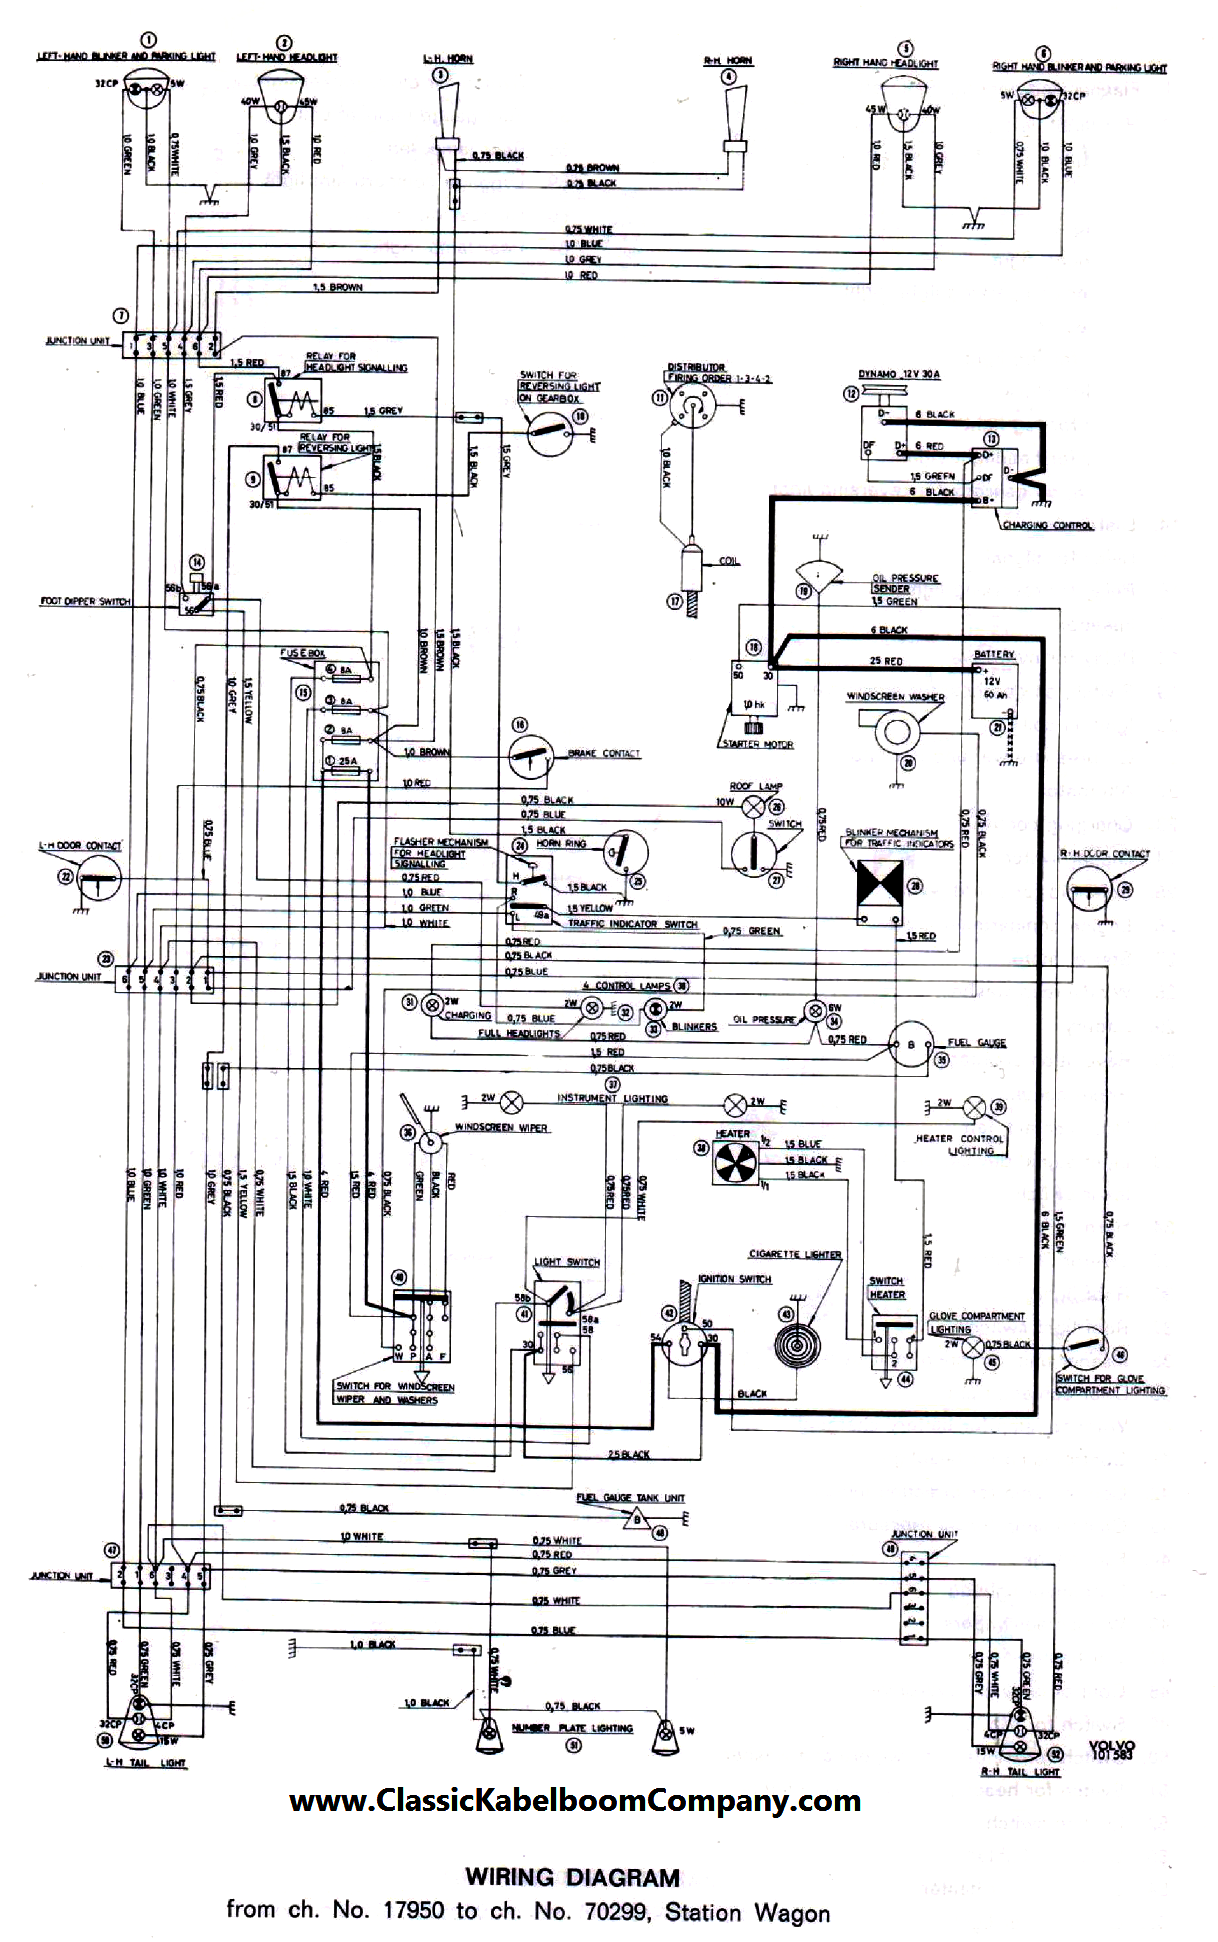 vol11?cdp=a classic kabelboom company elektrisch bedrading schema volvo volvo amazon wiring diagram at edmiracle.co